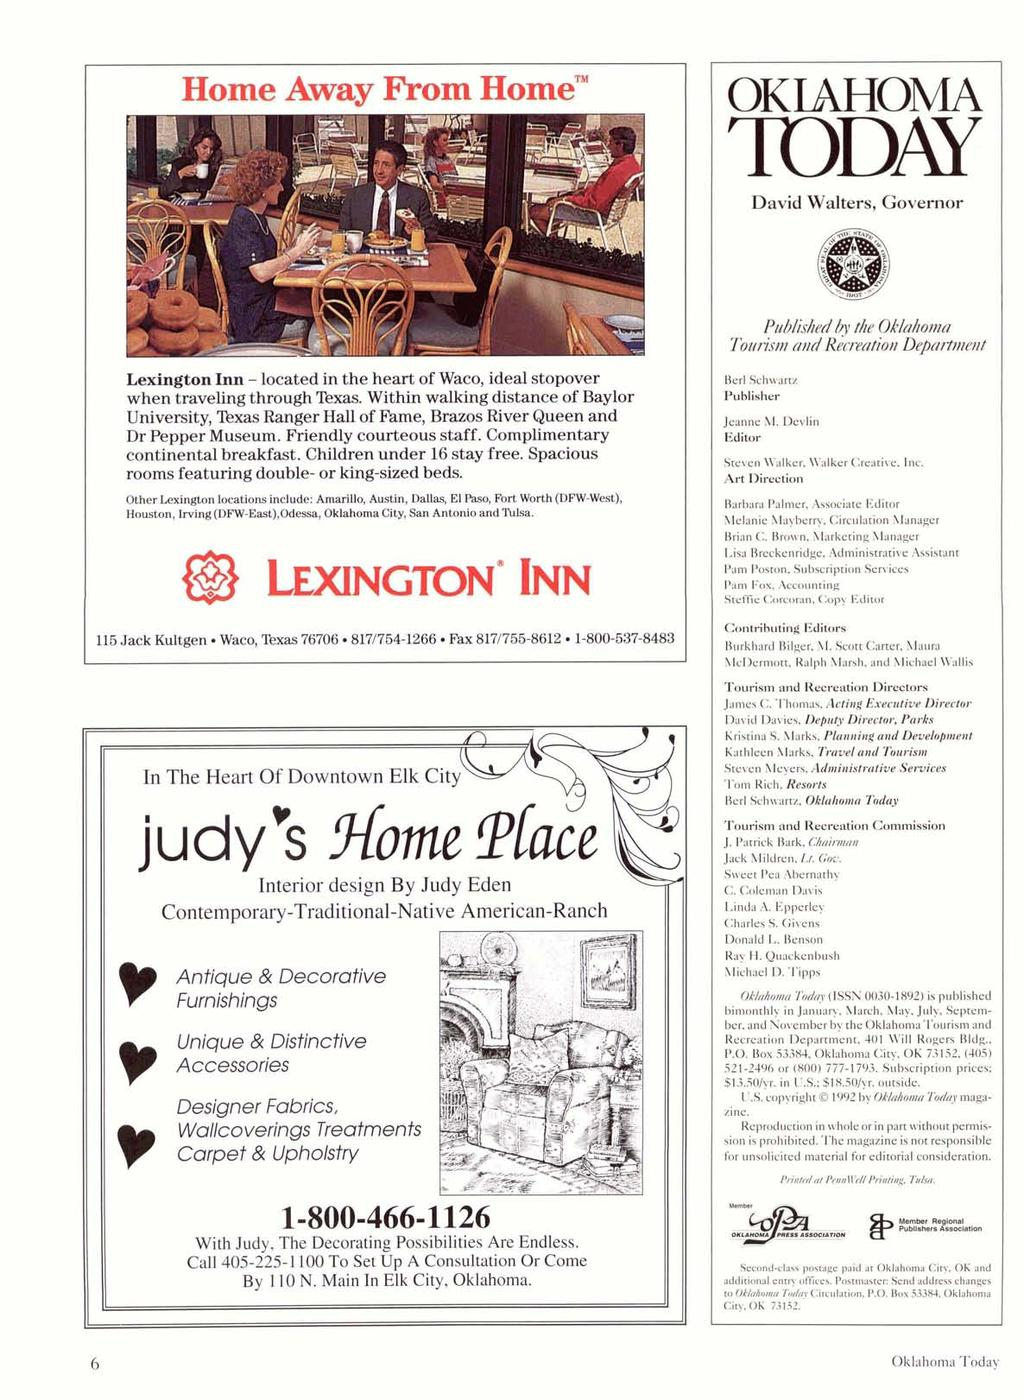 "Home Away From Home"" I. LexingtonInn- locatedin the heart of Waco, ideal stopover when travelingthroughtexas."